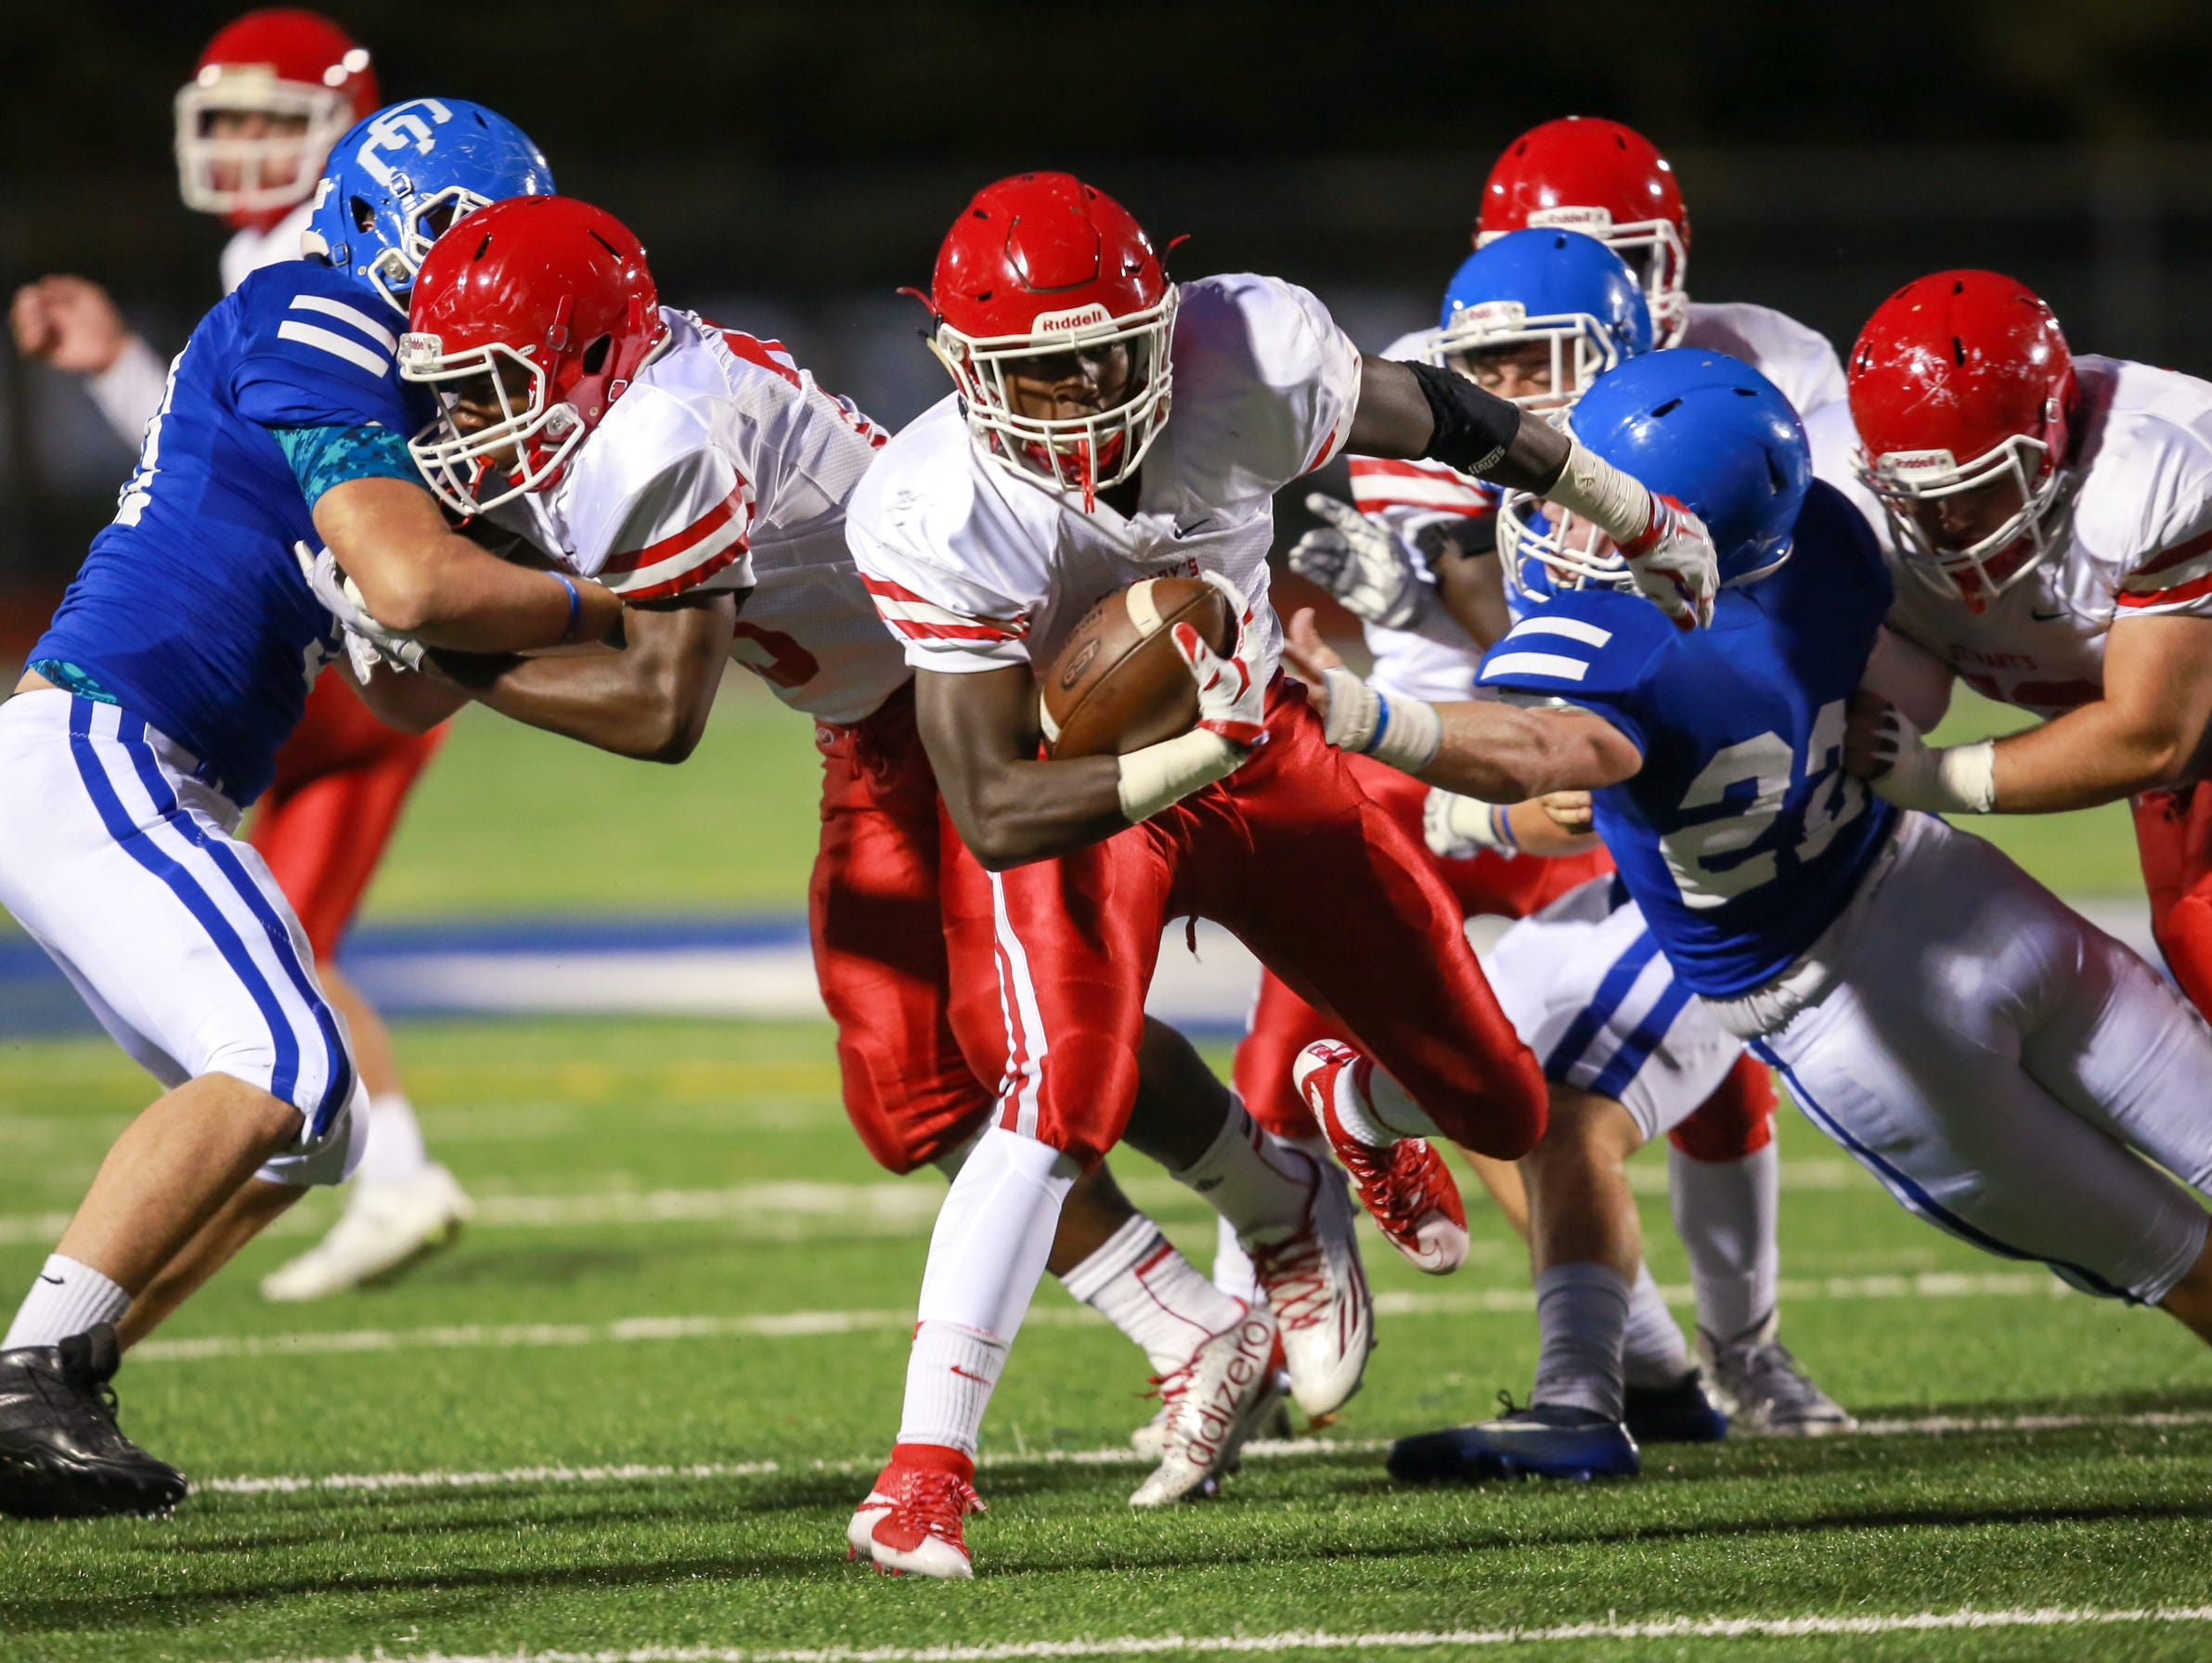 Orchard Lake St. Mary's Justin Myrick breaks though the defensive line against Novi Detroit Catholic Central on Friday.